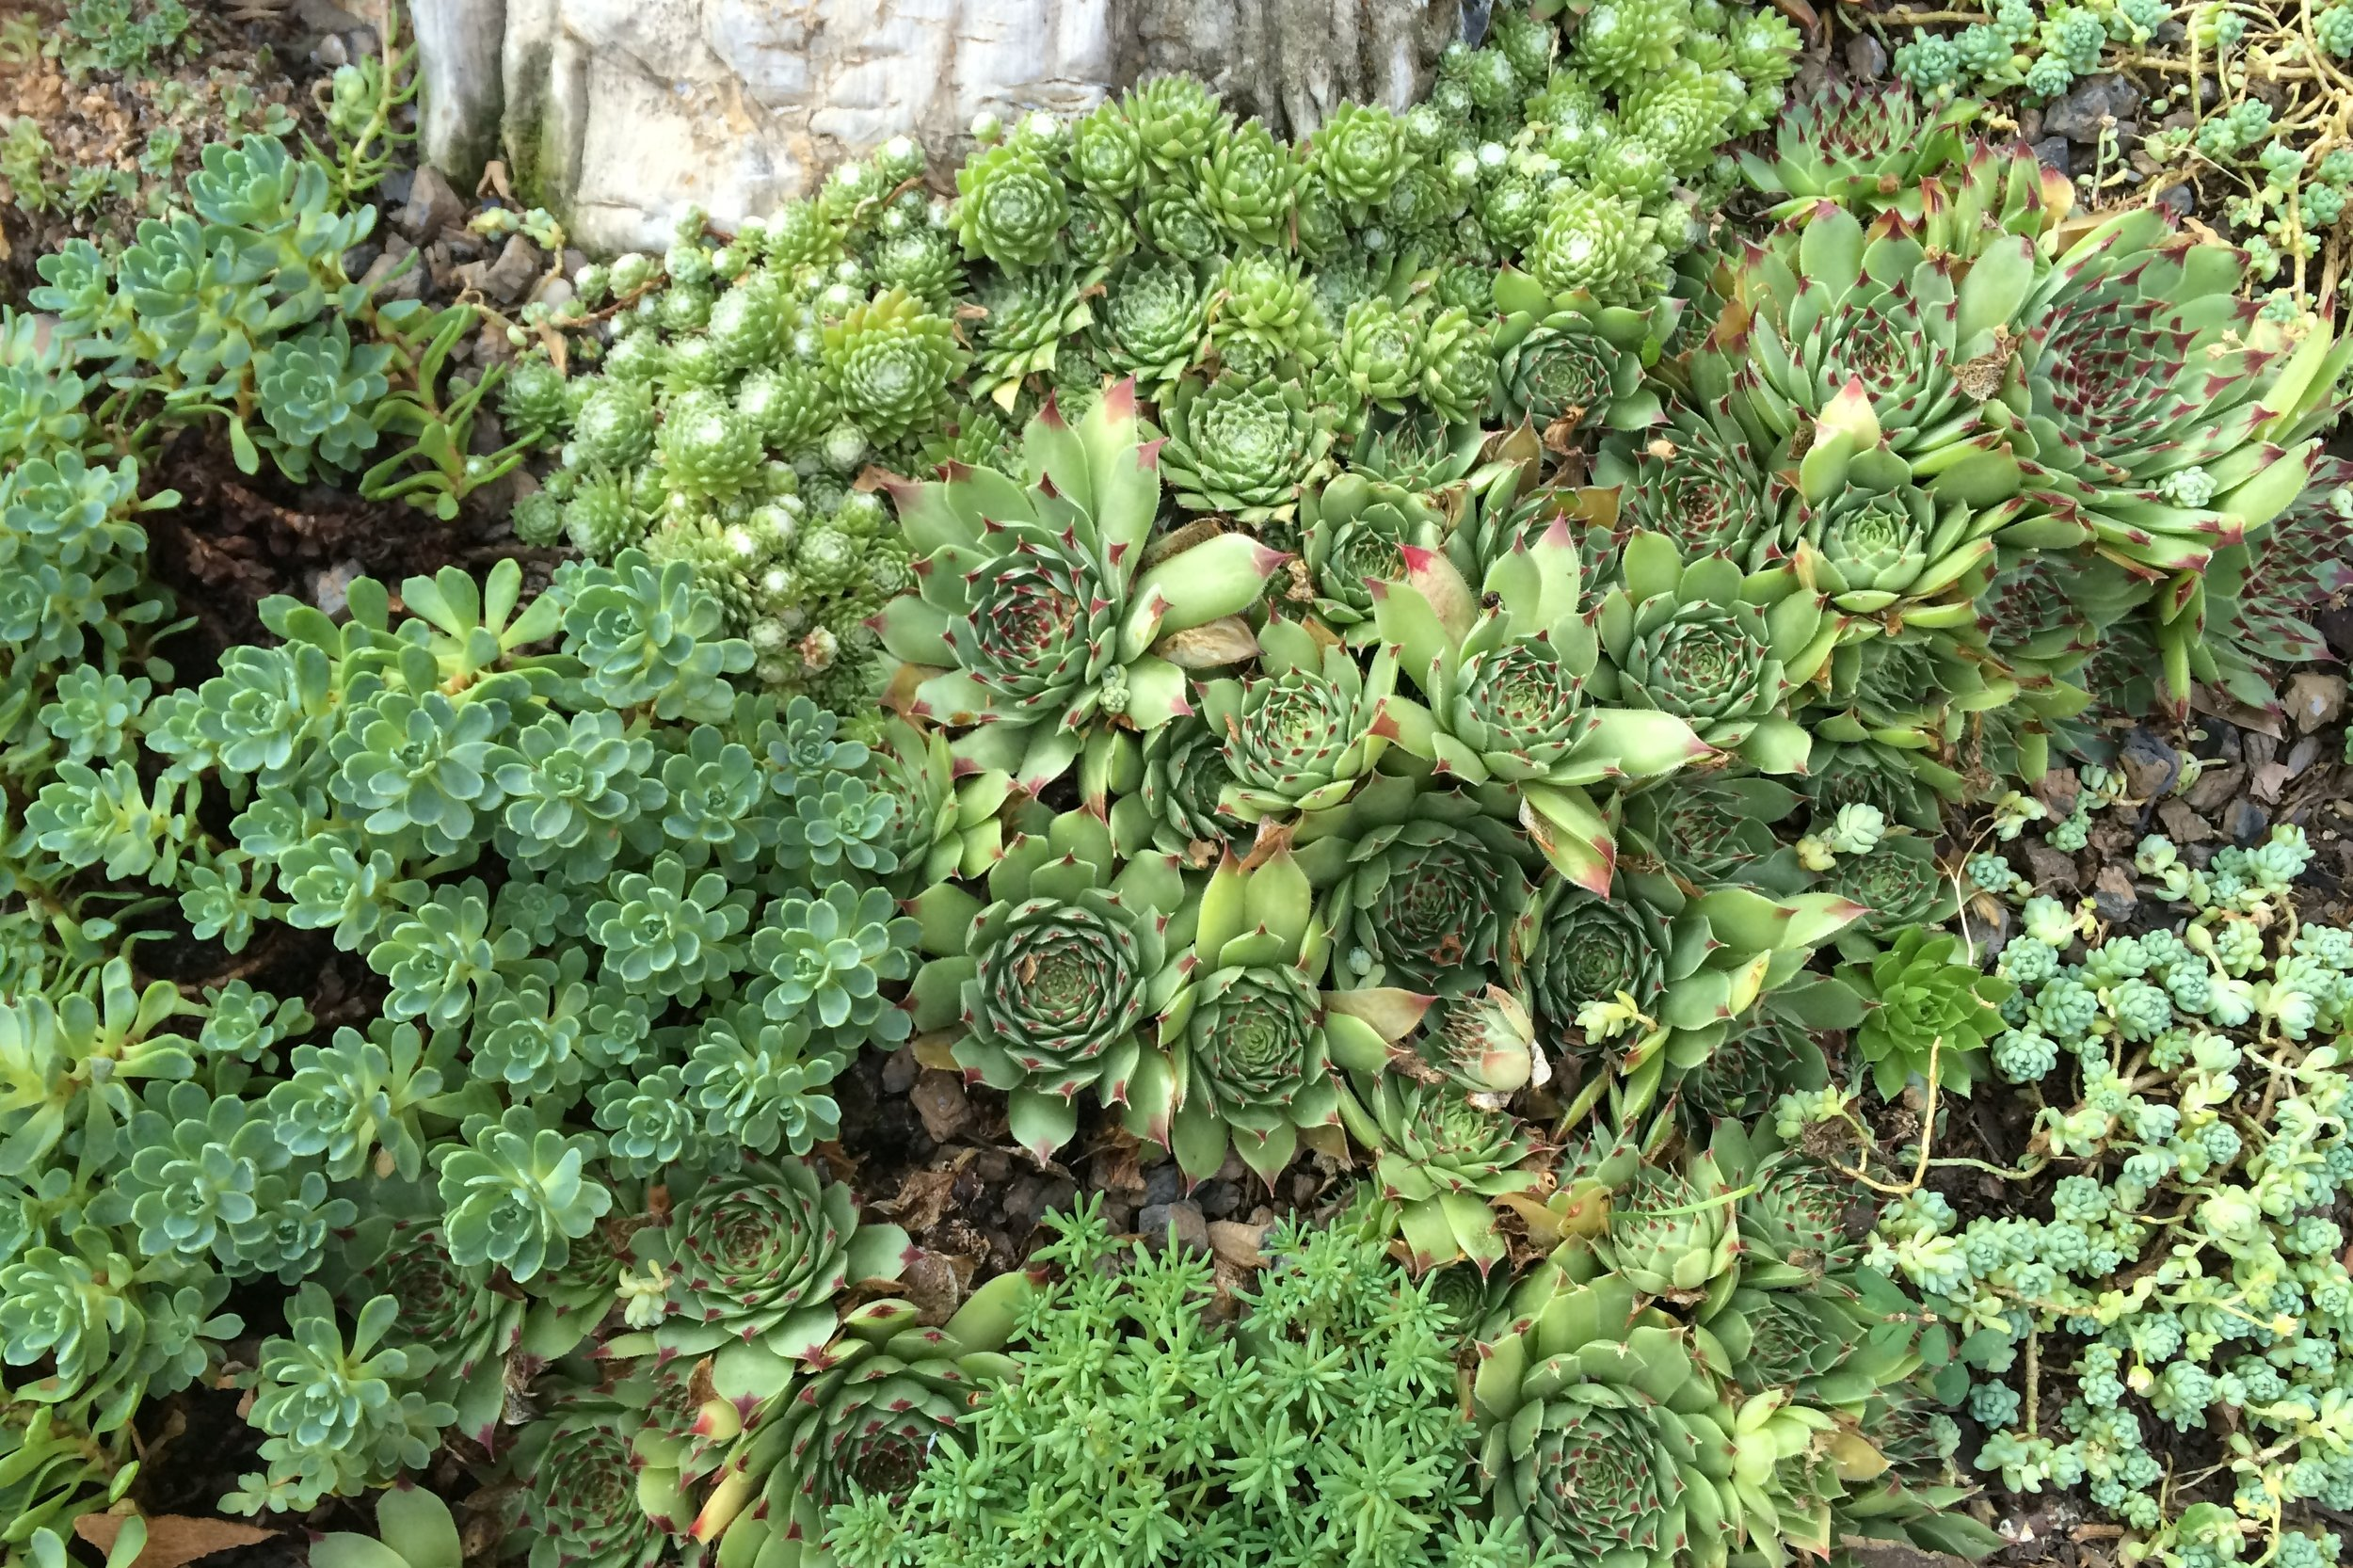 Gardens and Yards  These are variety of gardens and yards designed around New York City, employing varieties of sedum and other hearty, low-maintenance plants, indigenous stone, steel, and other complimentary materials.